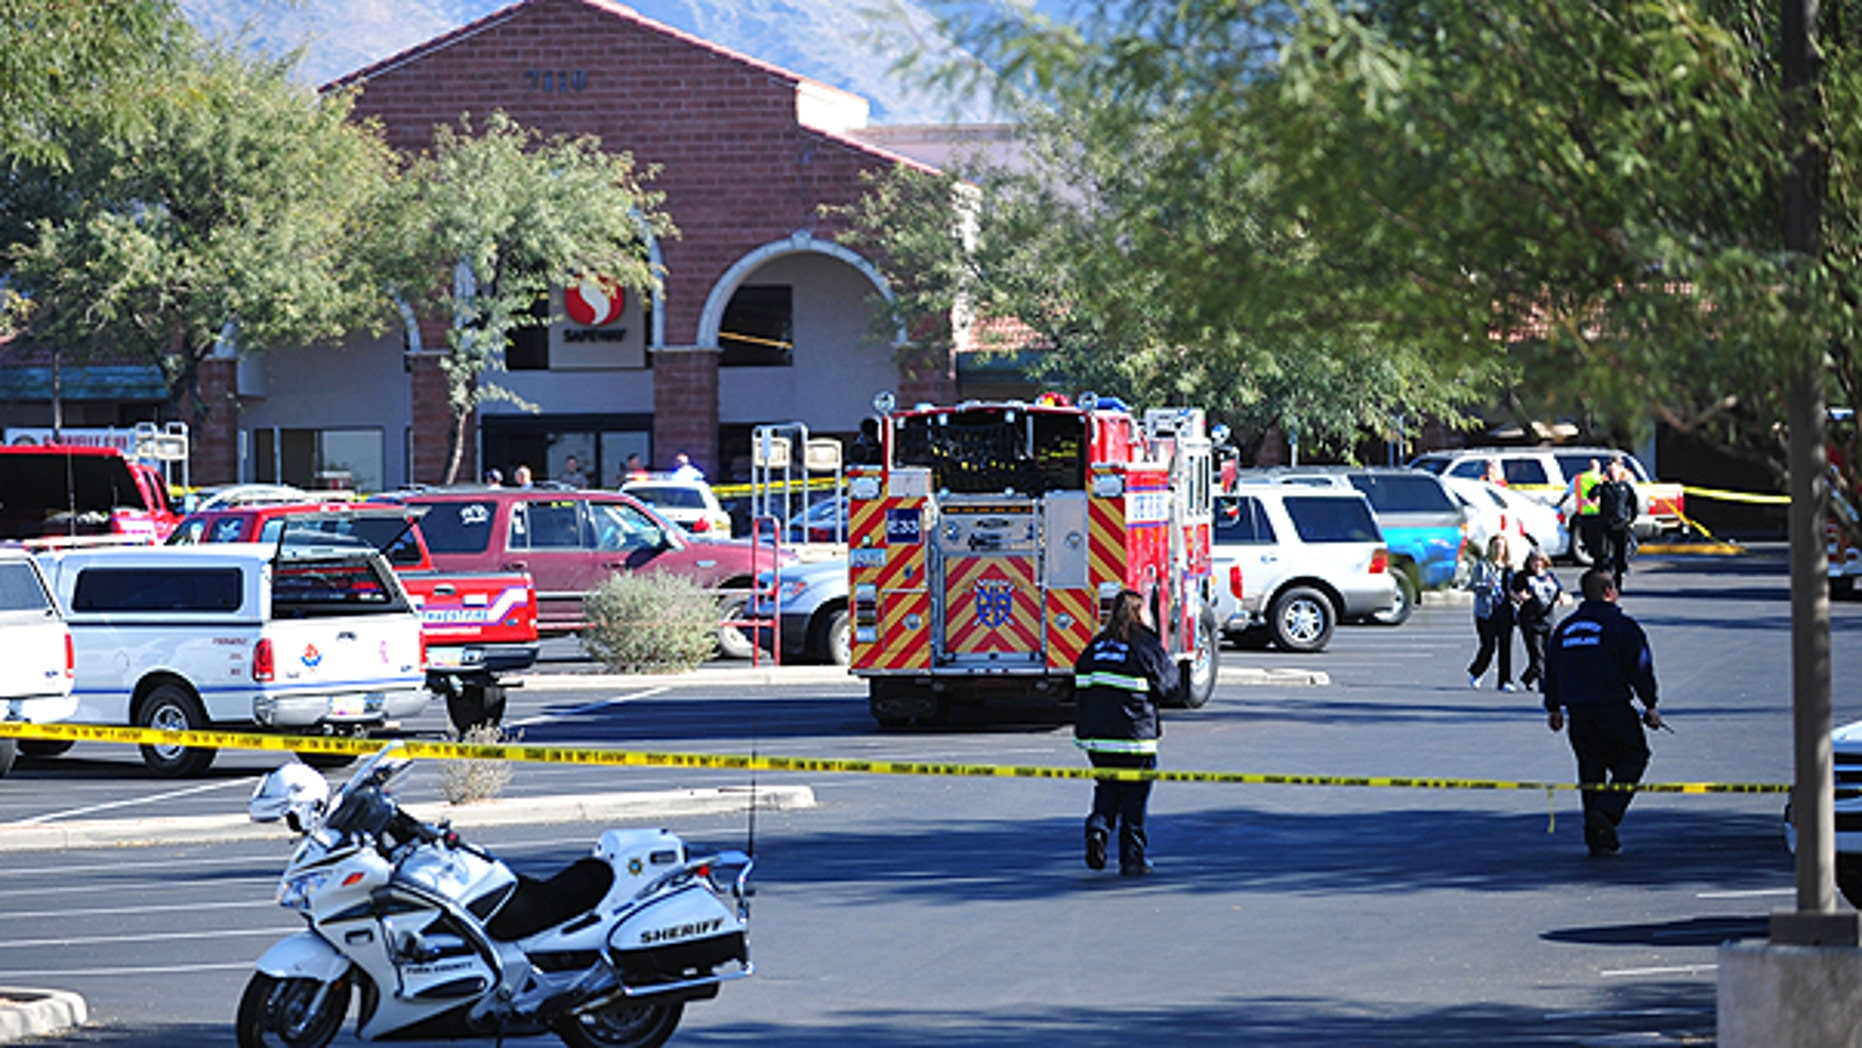 Jan. 8: Emergency officials work at the scene of a shooting that authorities claim involved Rep. Gabrielle Giffords, D-Ariz., at a Safeway grocery store in Tucson, Ariz.